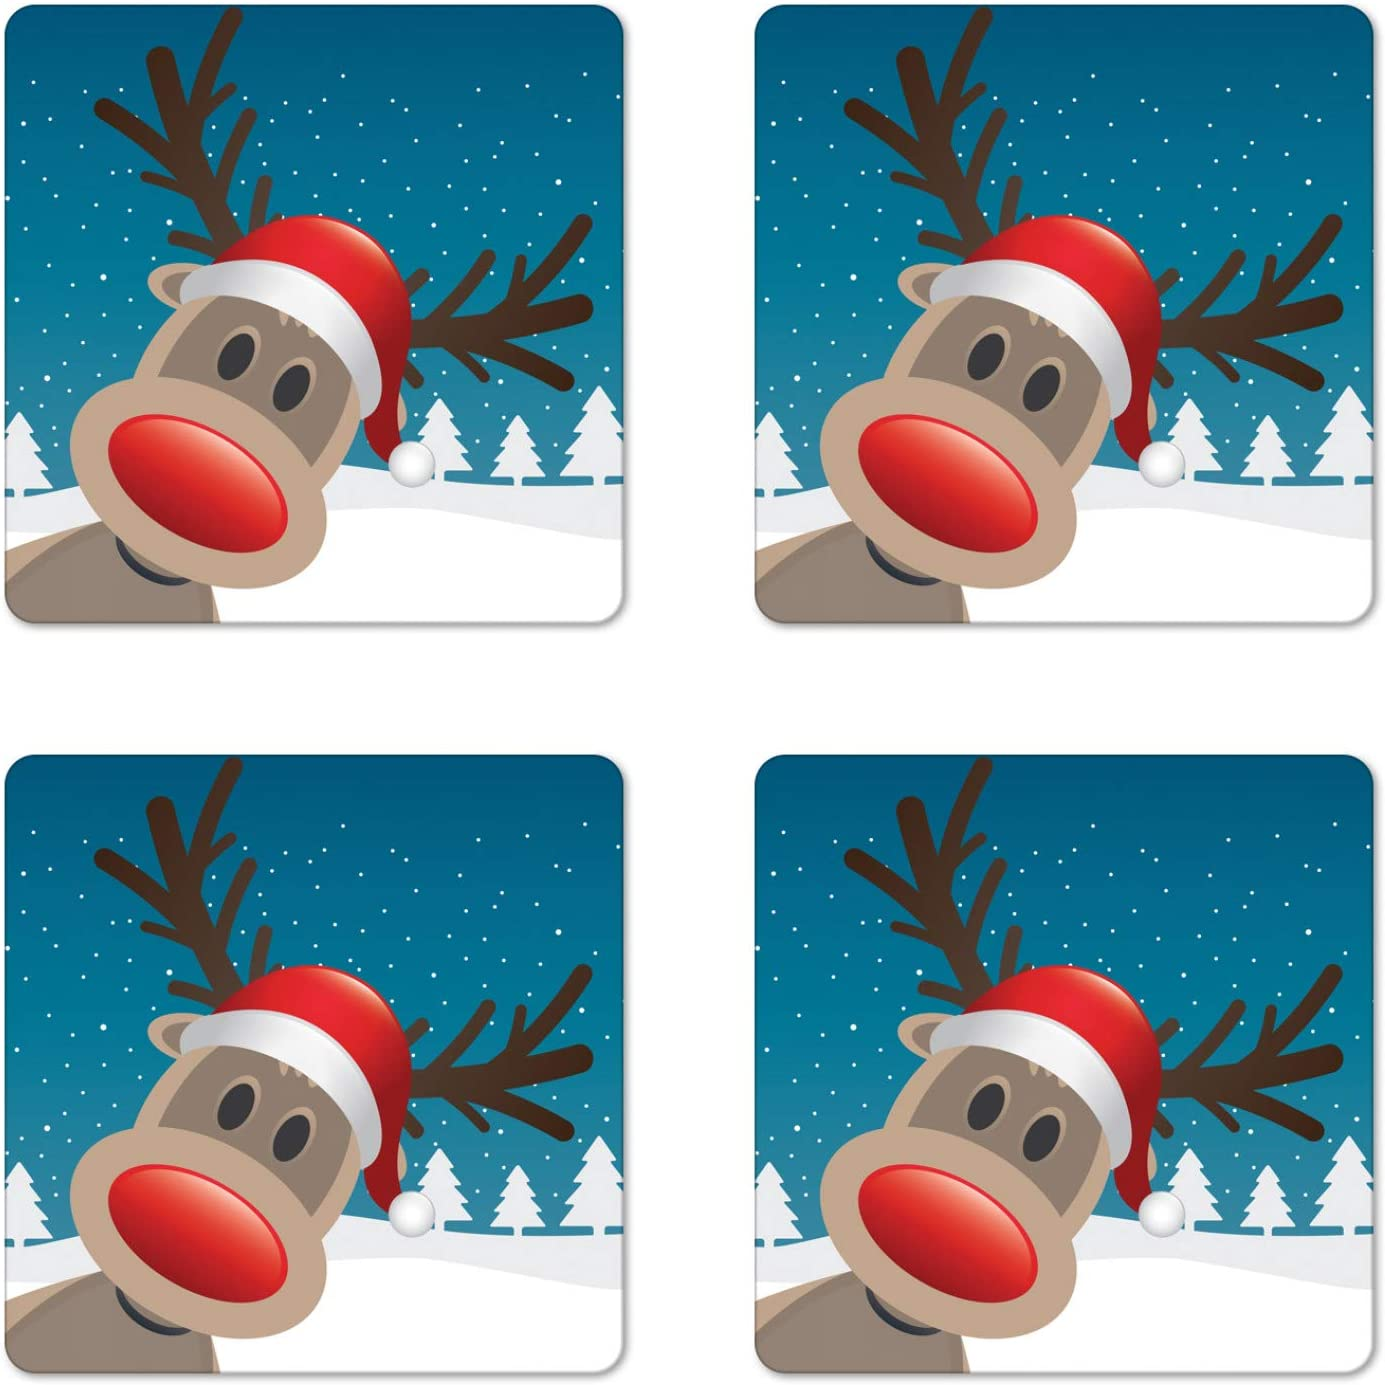 Ambesonne Christmas Coaster Set of 4, Rudolph the Reindeer with Santa Hat Holiday Kids Themed Fun Cartoon, Square Hardboard Gloss Coasters for Drinks, Brown Red Navy and White